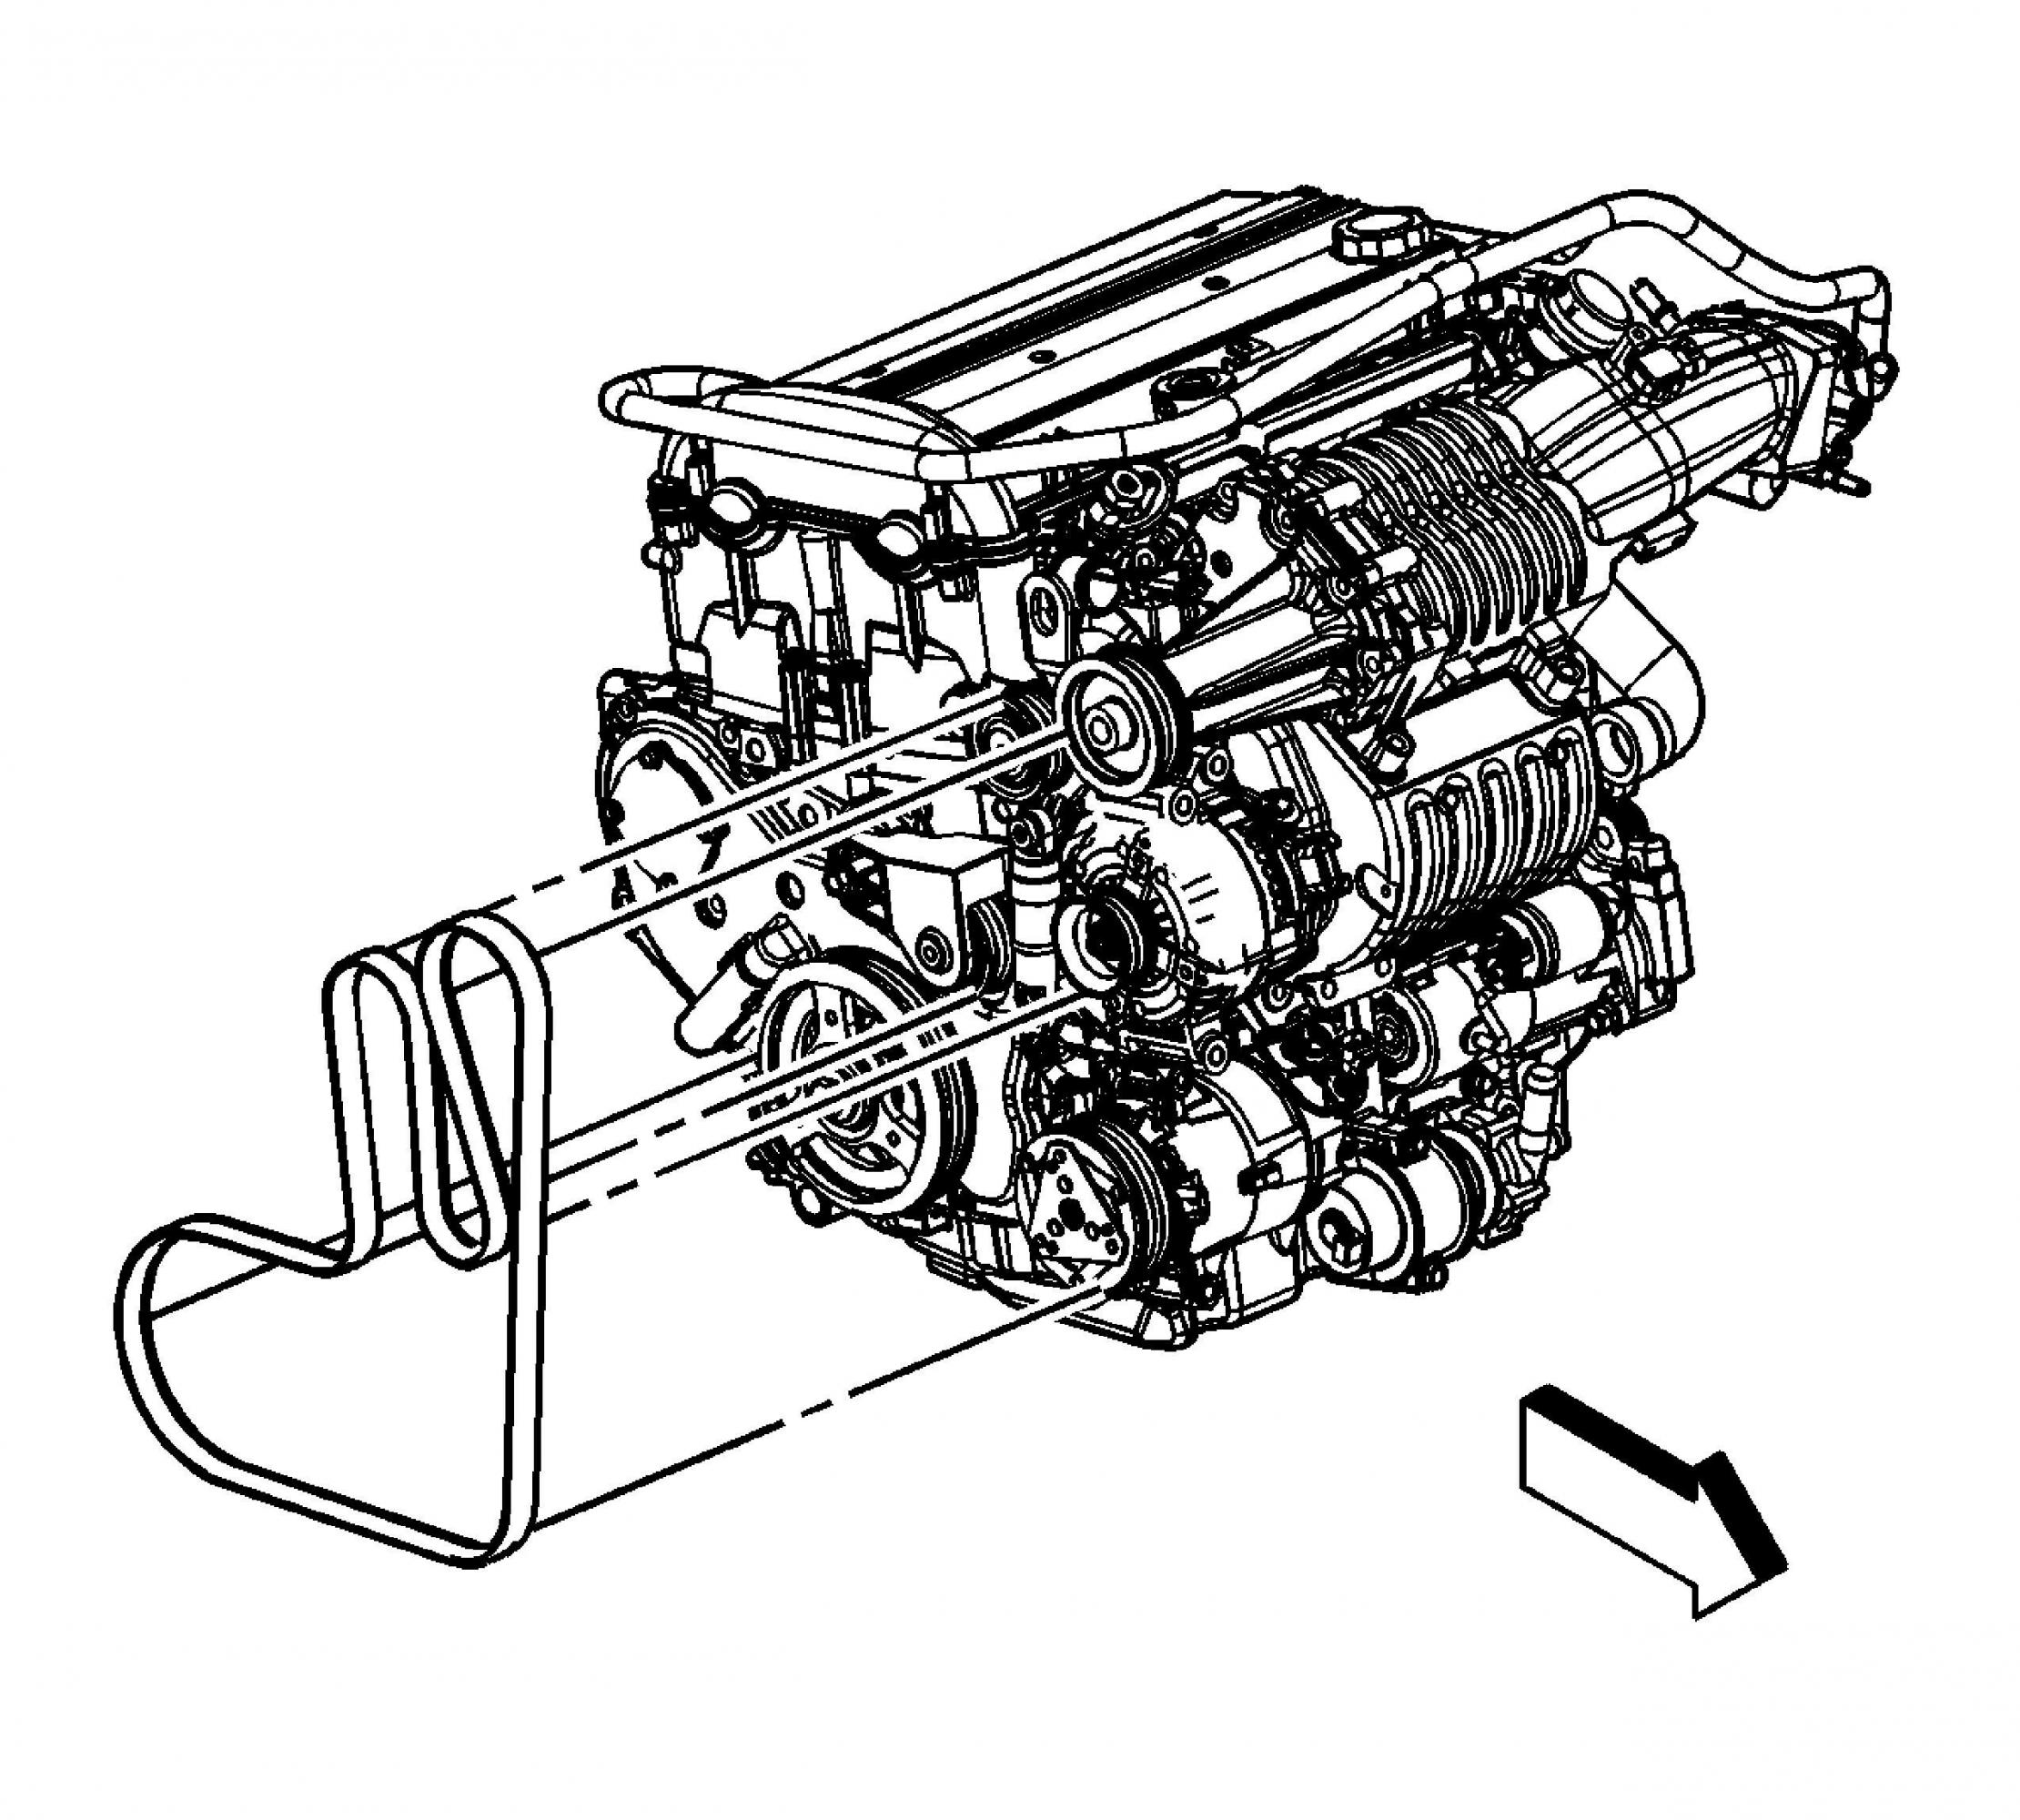 Belt Diagram Together With 2001 Chevy Cavalier Serpentine Belt Diagram